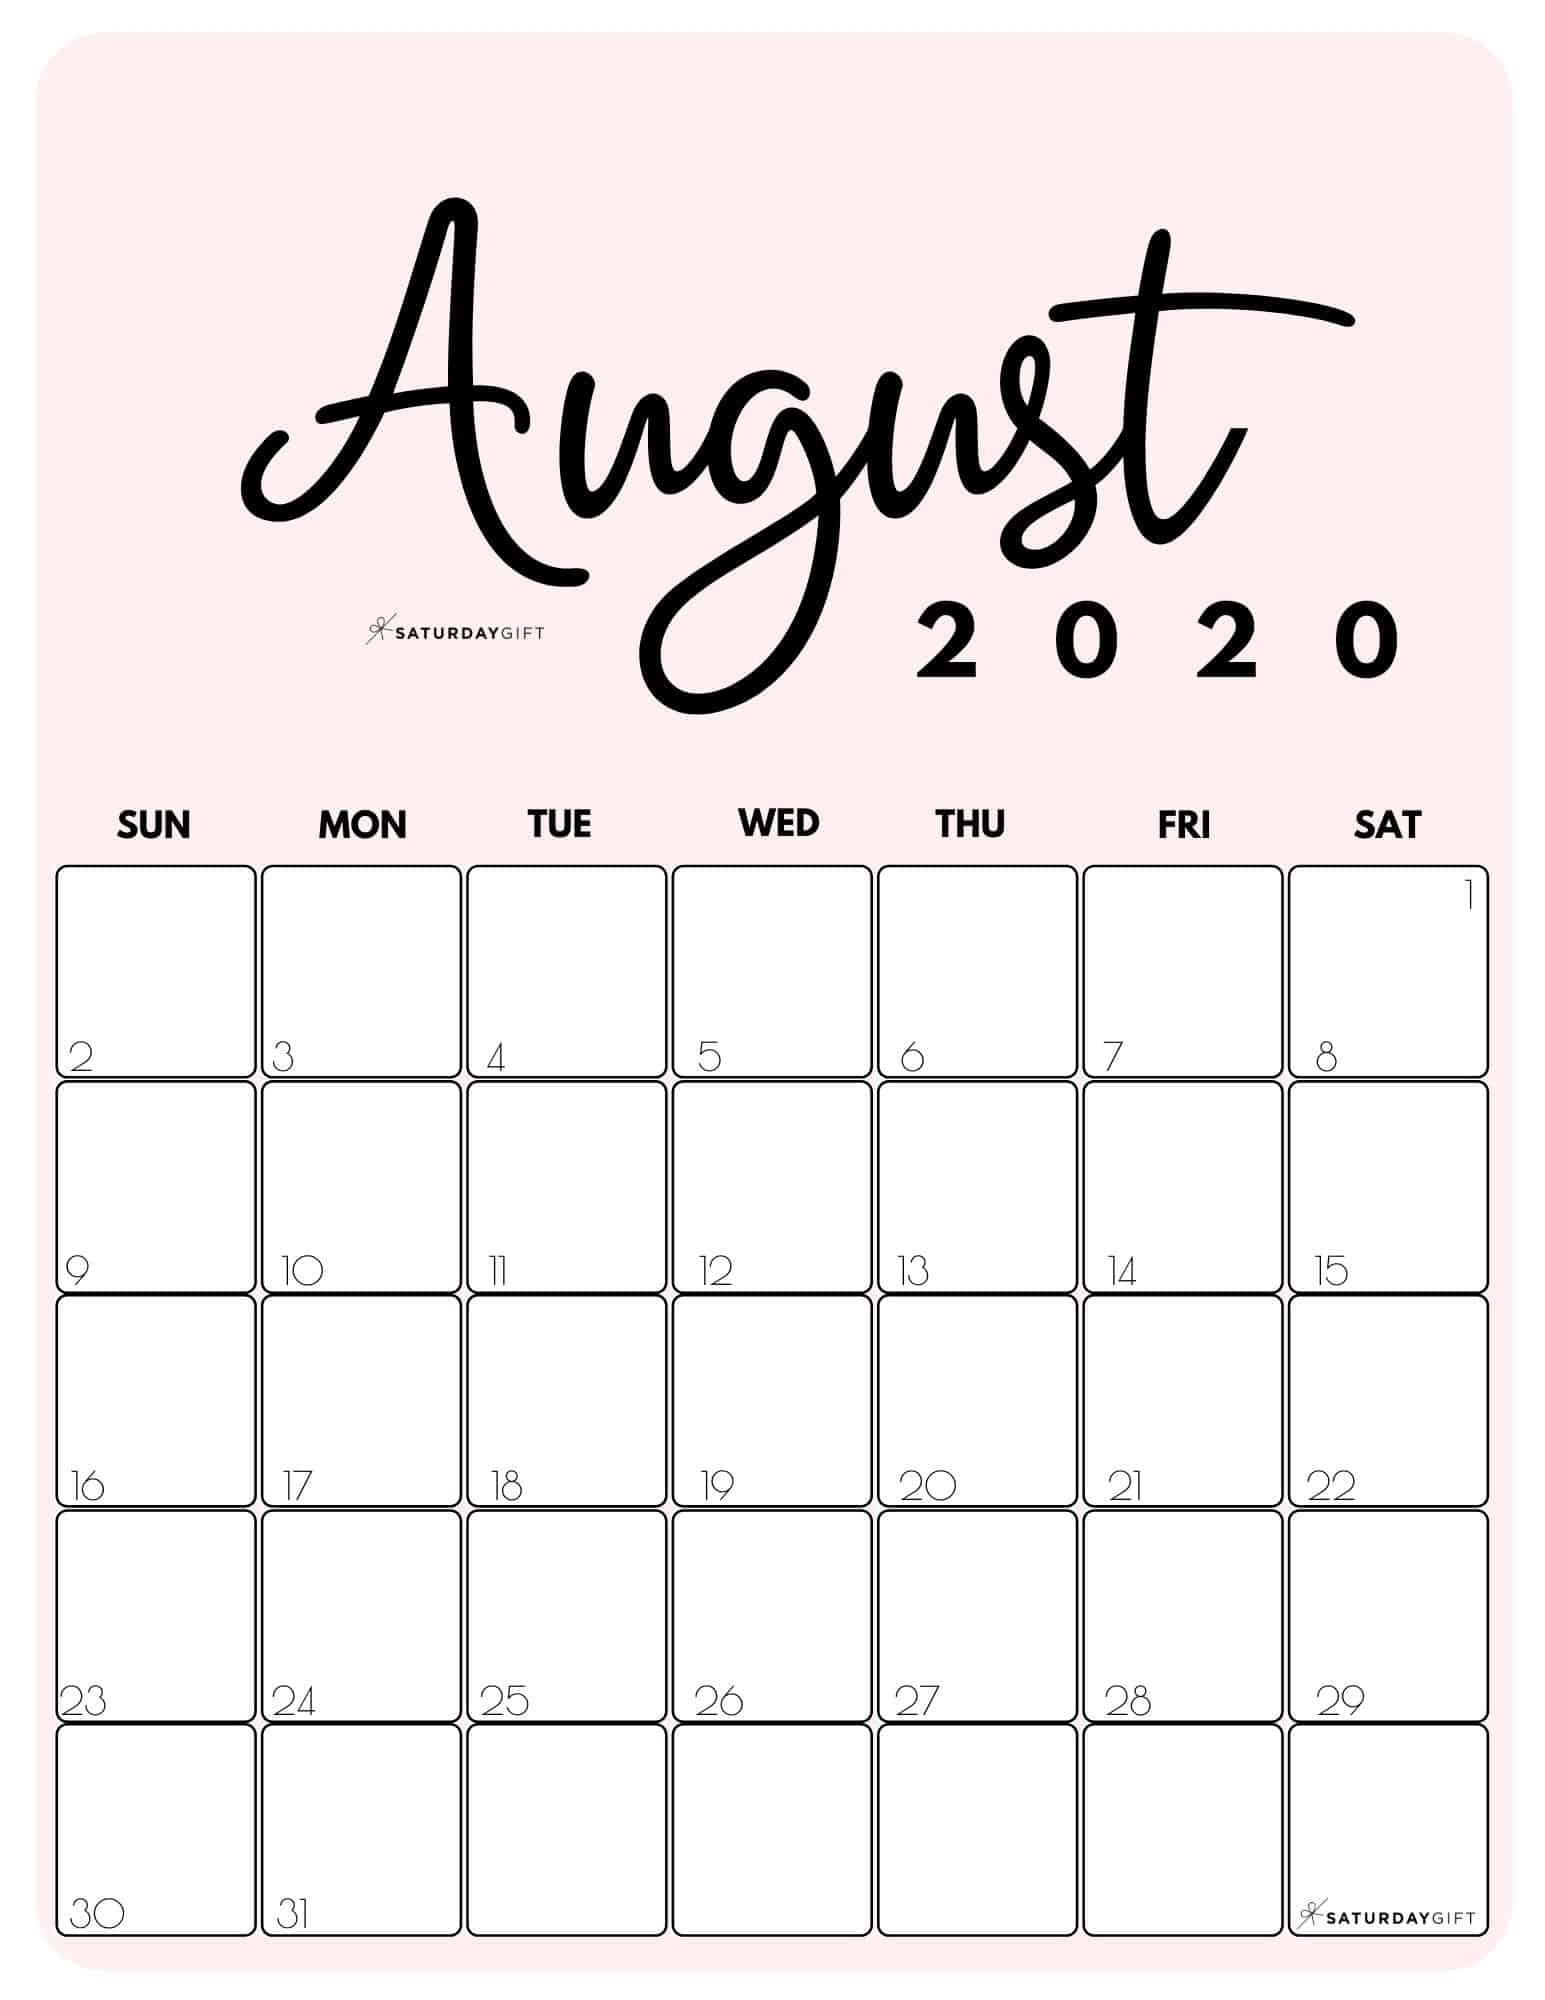 Catch August Calendar Print Out